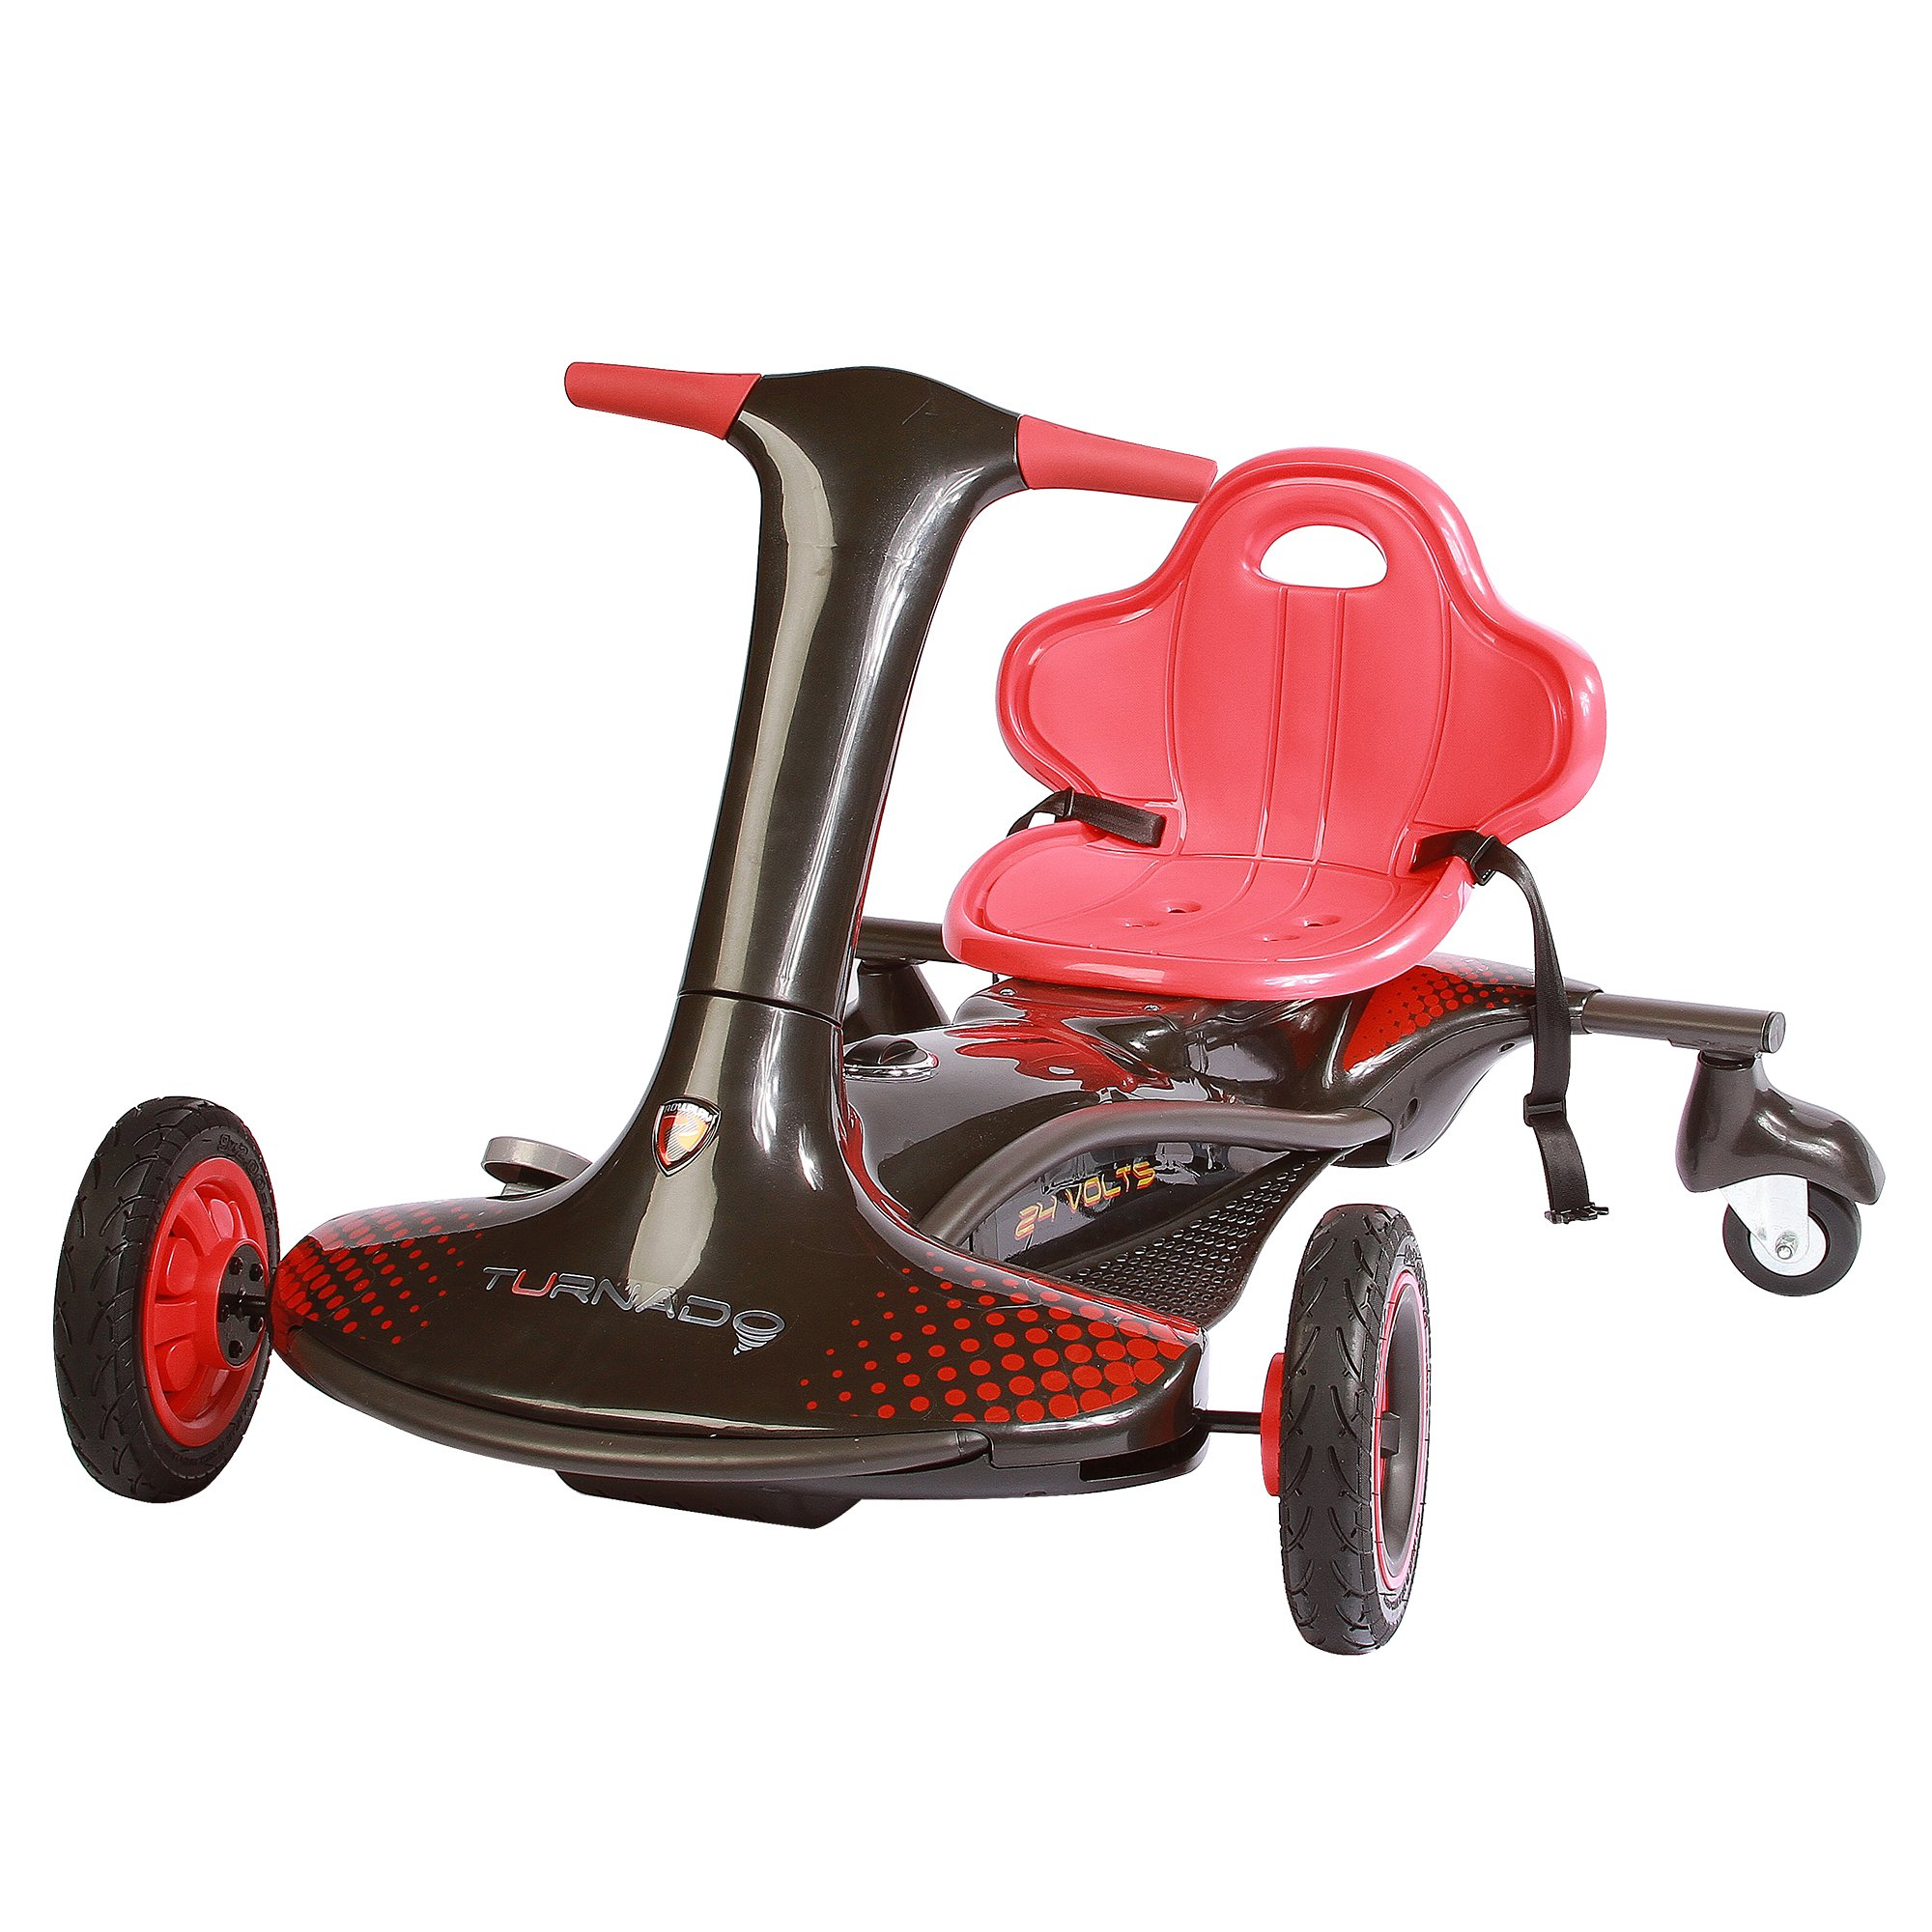 Rollplay Turnado 24-Volt Battery-Powered Ride-On by Rollplay (Image #3)